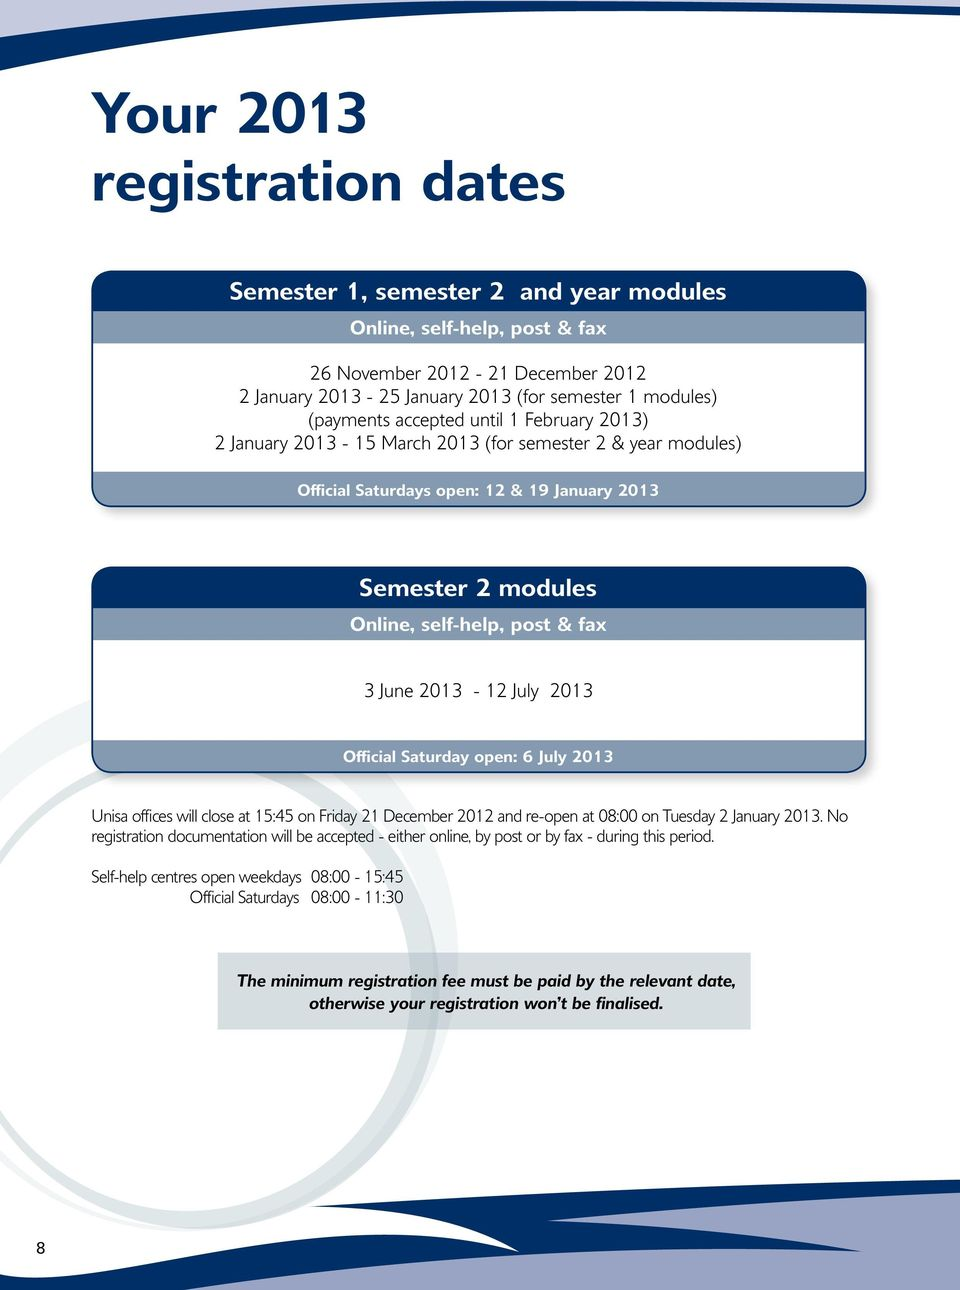 2013-23 January 2012 2 January 2013-15 March 2013 (for semester 3 January (payments excepted until 1 February) 2 & 2013 year - modules) 19 March 2013 You can register Monday Official to Saturdays